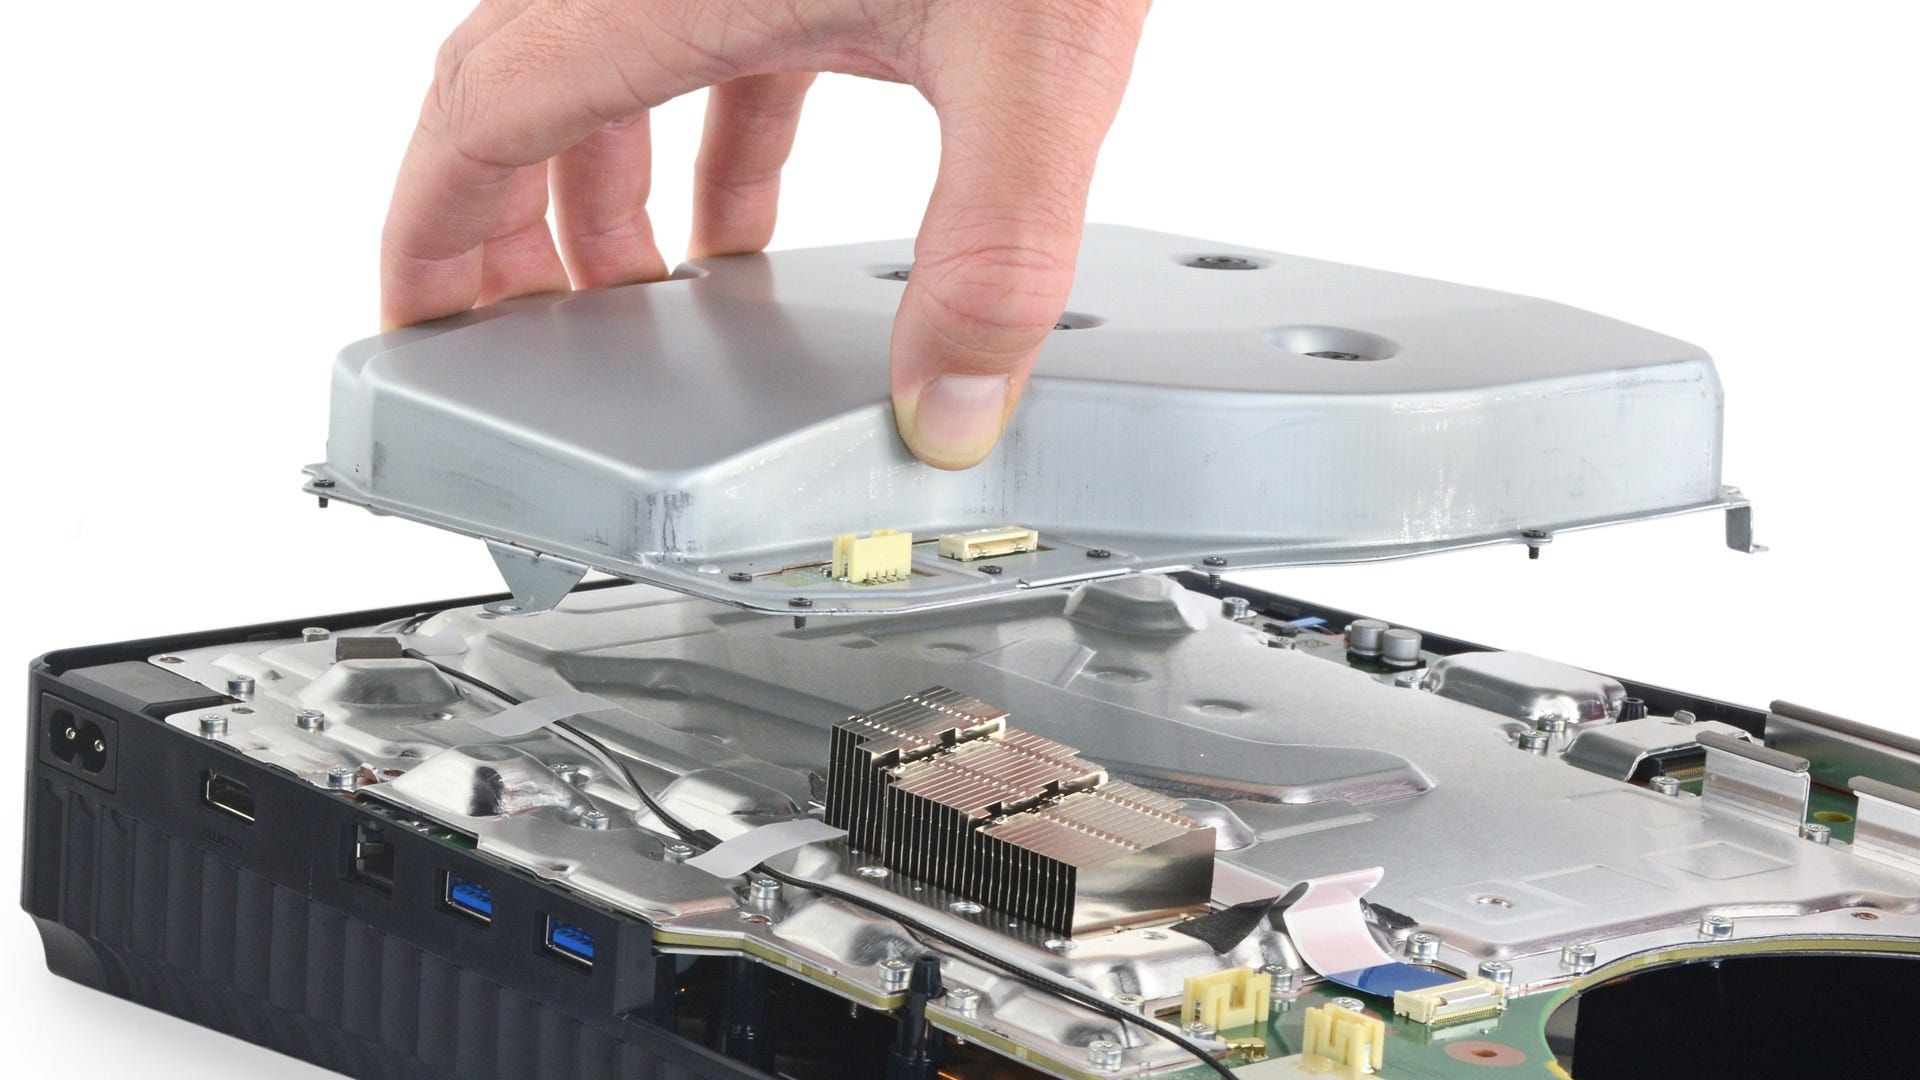 iFixit teardown of the PS5: disc drive